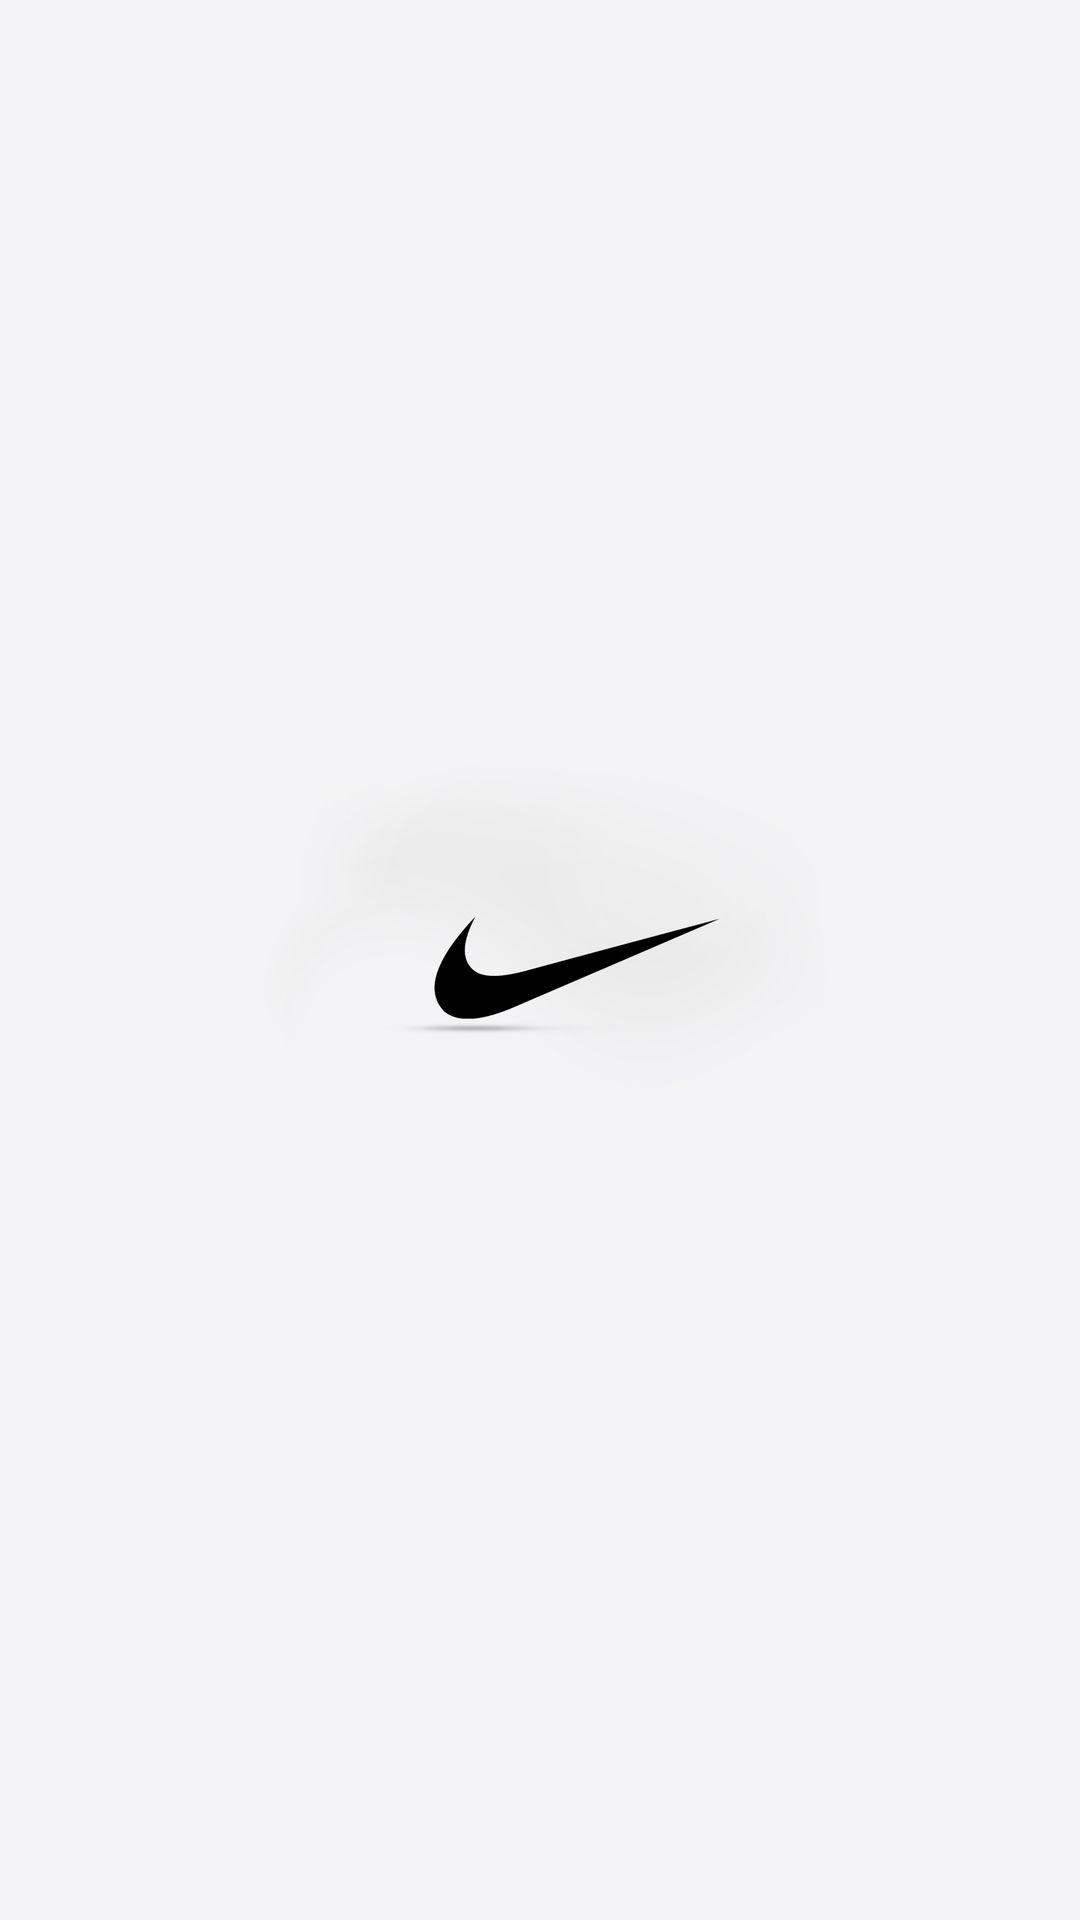 Nike htc one wallpapers